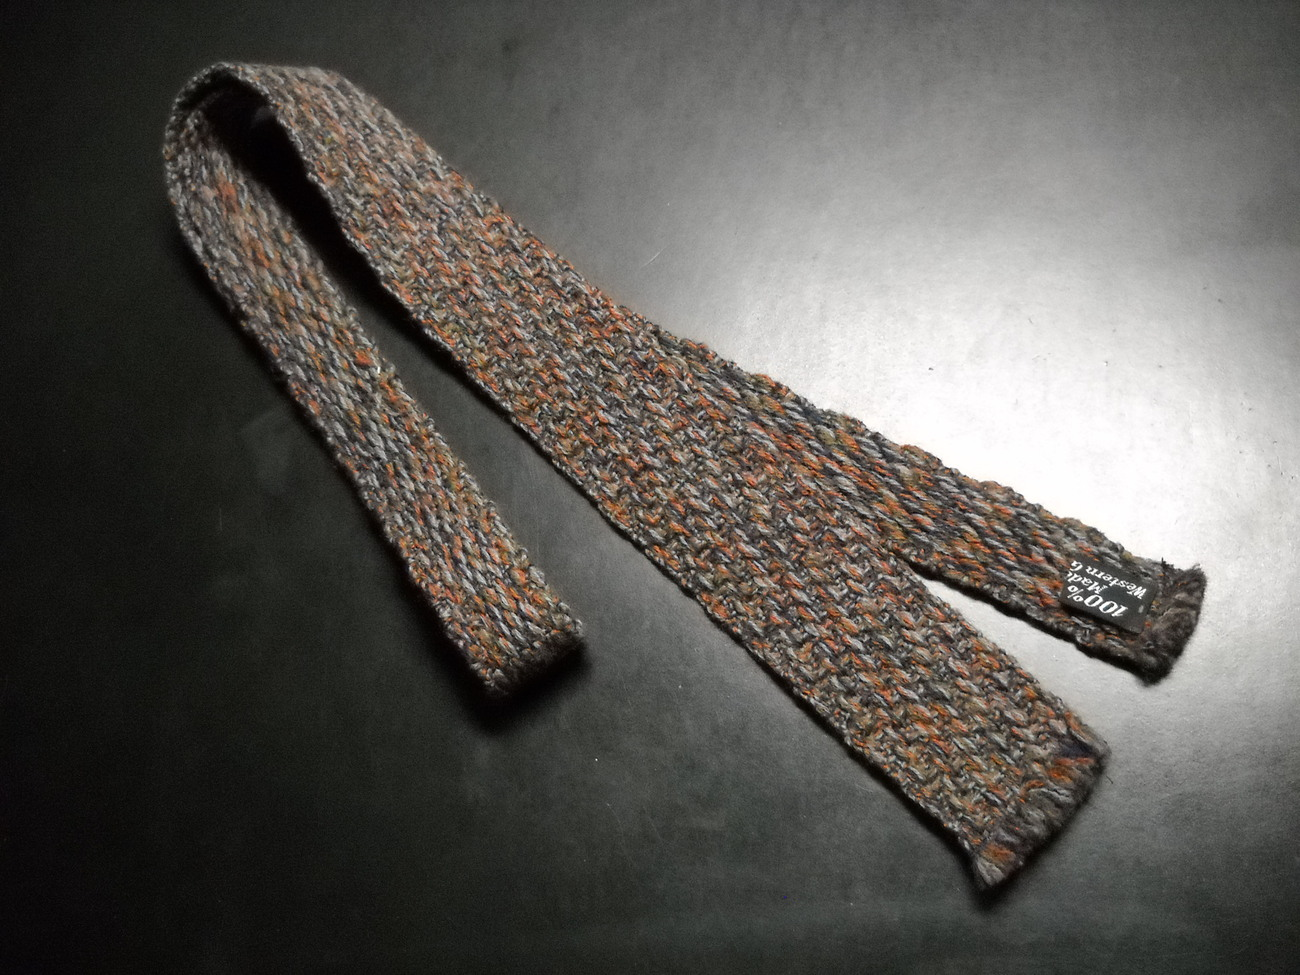 Guy Laroche Cravates Neck Tie A Weave of German Wools in Browns Fringed Ends